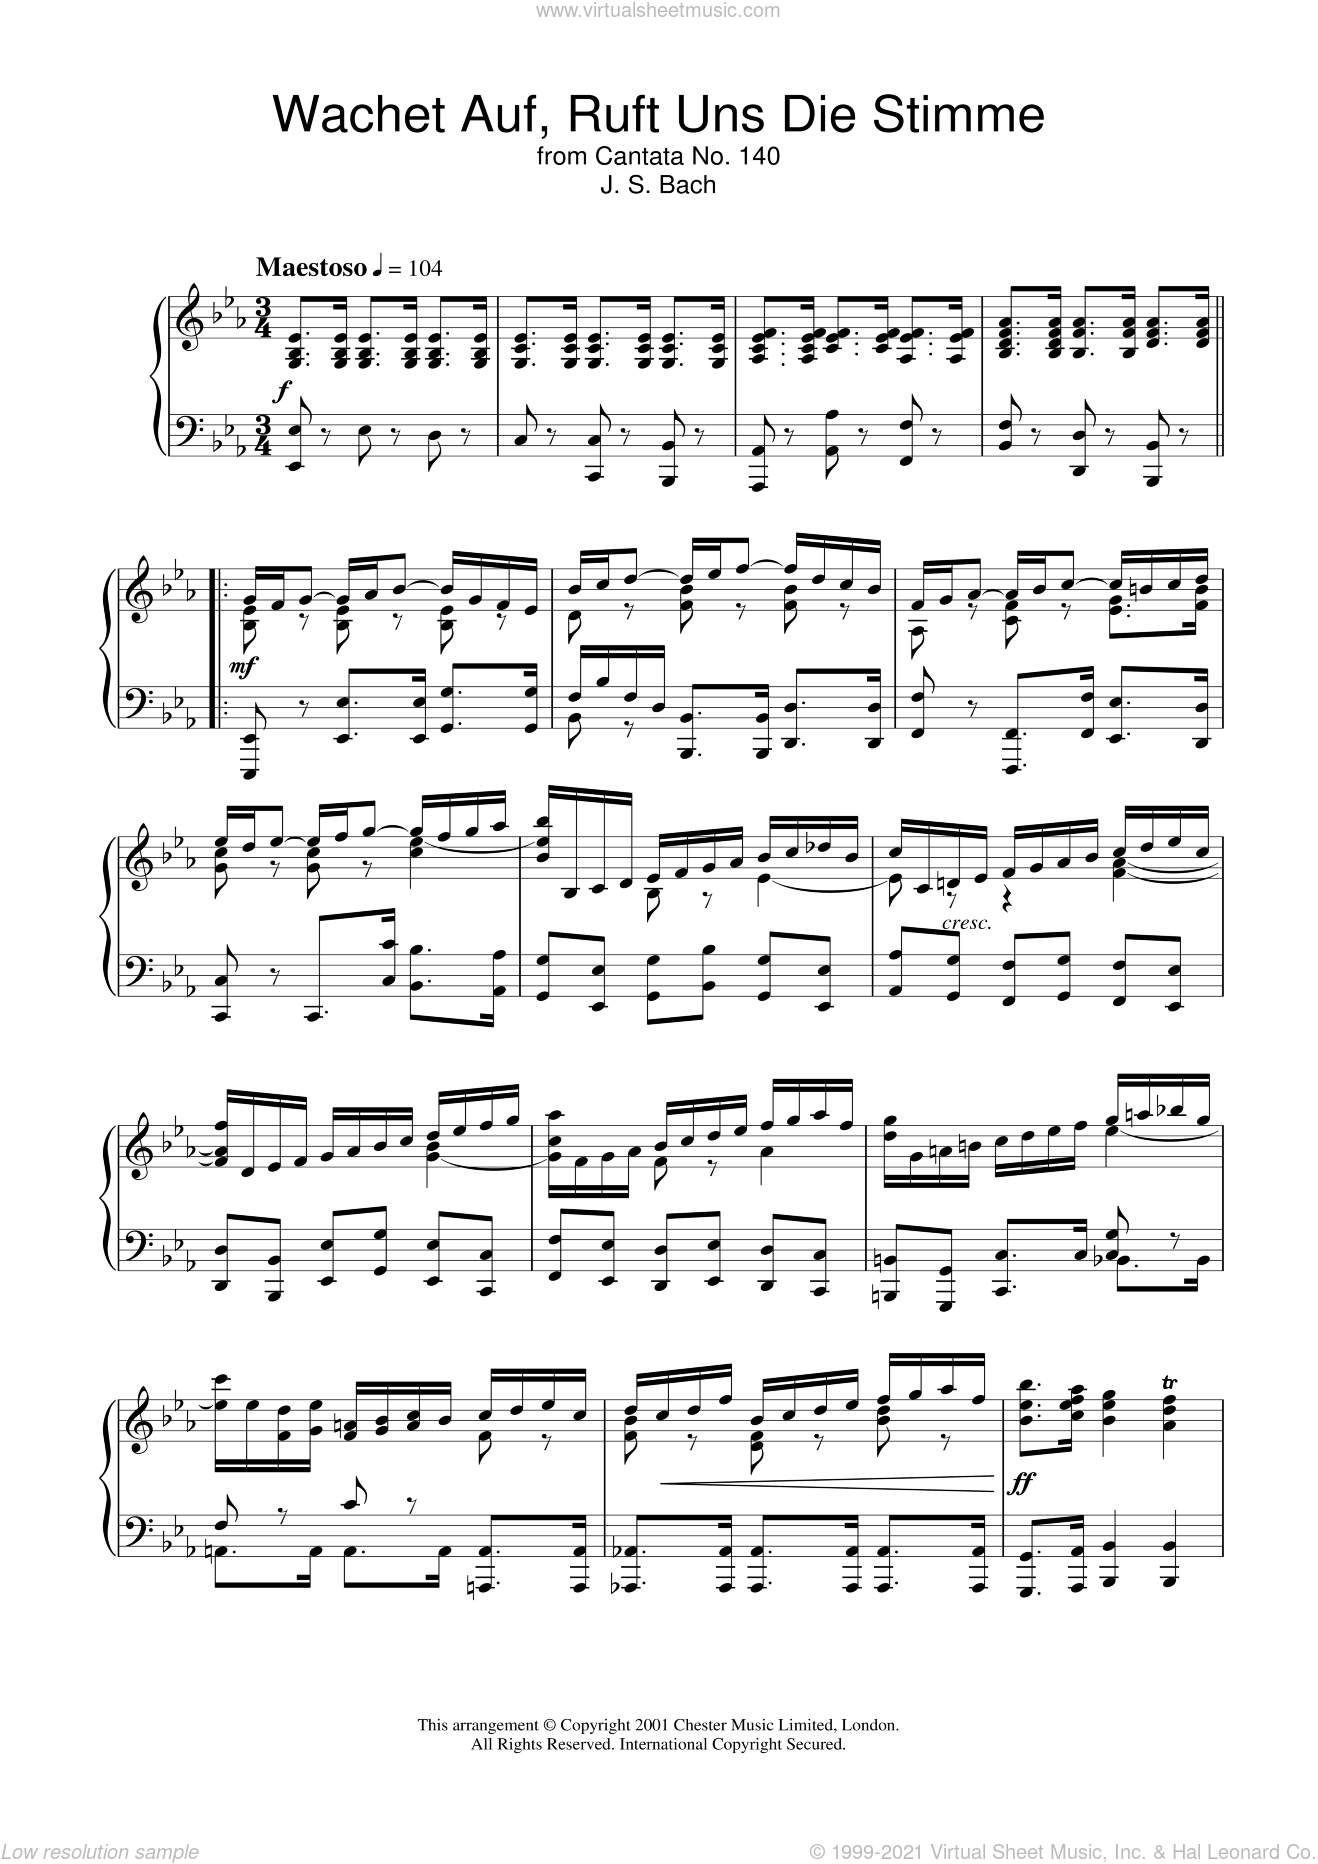 Wachet Auf, Ruft Uns Die Stimme (from Cantata No.140) sheet music for piano solo by Johann Sebastian Bach, classical score, intermediate skill level